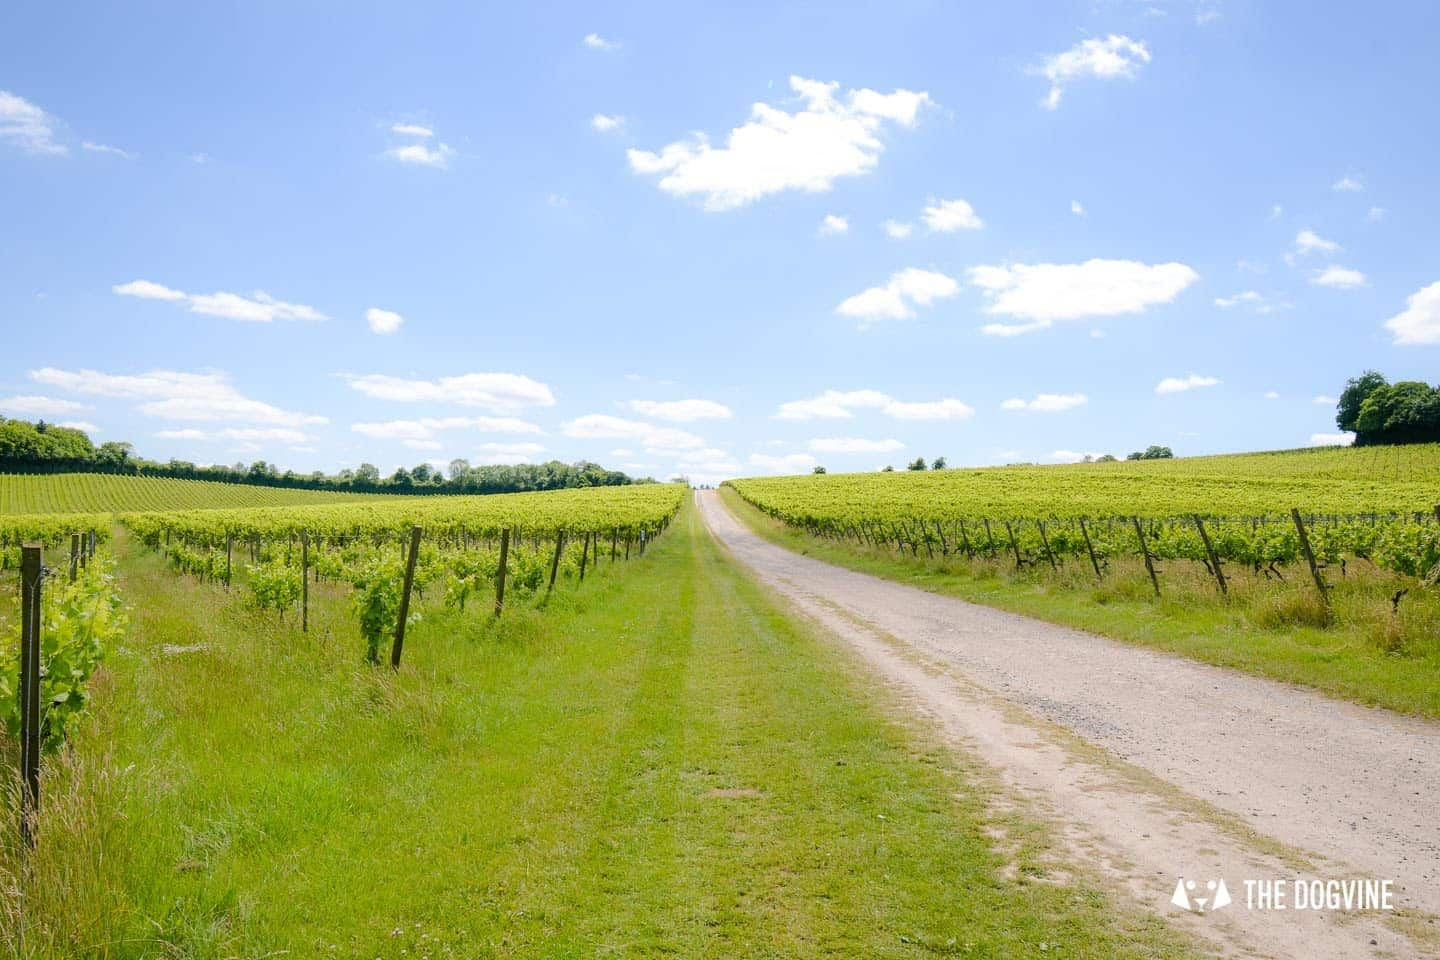 Denbies Dog-friendly Vineyard | A Delightful Day Out 1